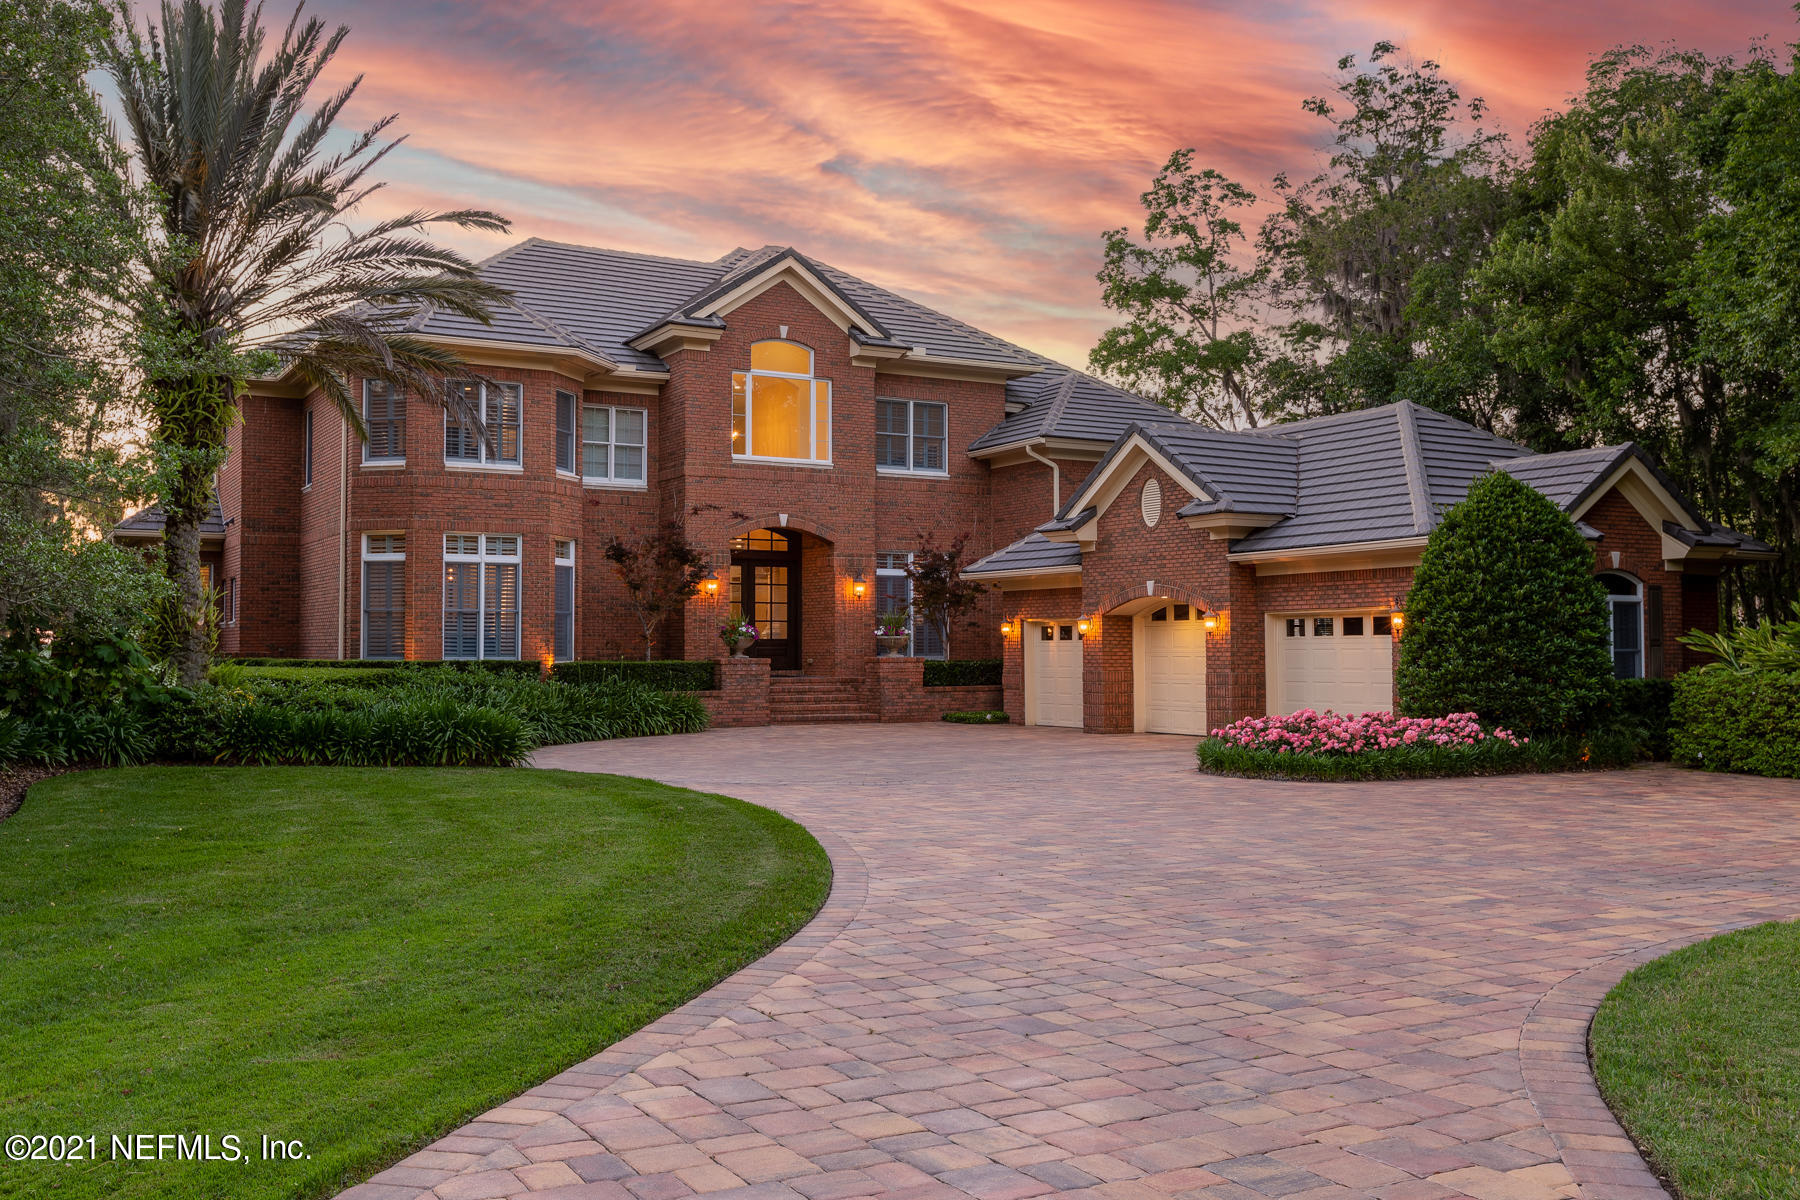 Truly extraordinary riverfront property is move-in ready & meticulously maintained w/ excellent floor plan. Breathtaking views of St. Johns river at every turn. Ideal family/kitchen combo. FR w/ custom built-ins, FP, hardwood flooring & motorized blinds. Gracious 2-story LR. Elegant DR. Downstairs owner's suite w/ separate sitting area & two-sided fireplace. Newly renovated, stunning bath w/ white marble & inviting soaking tub. Spacious his/hers closets. Library w/ full bath can also be downstairs guest BR. 3 U/S BR w/ ent. loft. Peaceful outdoor living is second to none w/ expansive yard, pool, dock, boat and jet ski lifts, 2-story entertainment boathouse. Incredible screened-in side porch w/ trex decking & summer kitchen. Pavered driveway, 3-car garage. Professional photos coming soon!